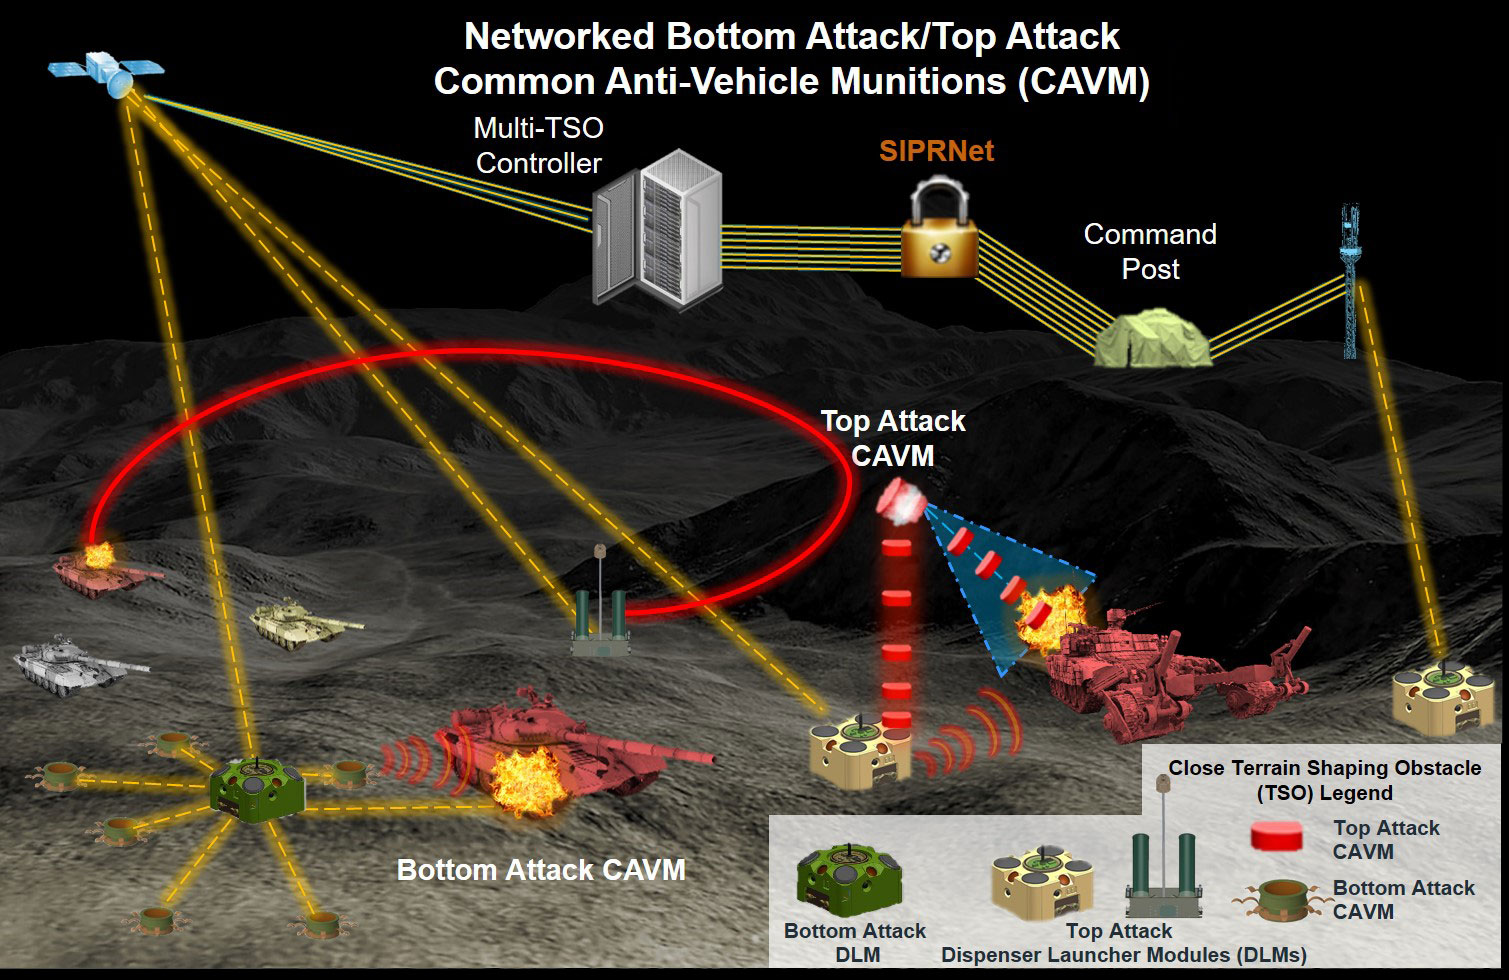 PM GLMR is developing the next-generation field of munitions for the CTSO program. Each munition field consists of three critical components: a bottom attack capability, a top attack capability and a command-and-control architecture to securely network the field back to Army mission command.